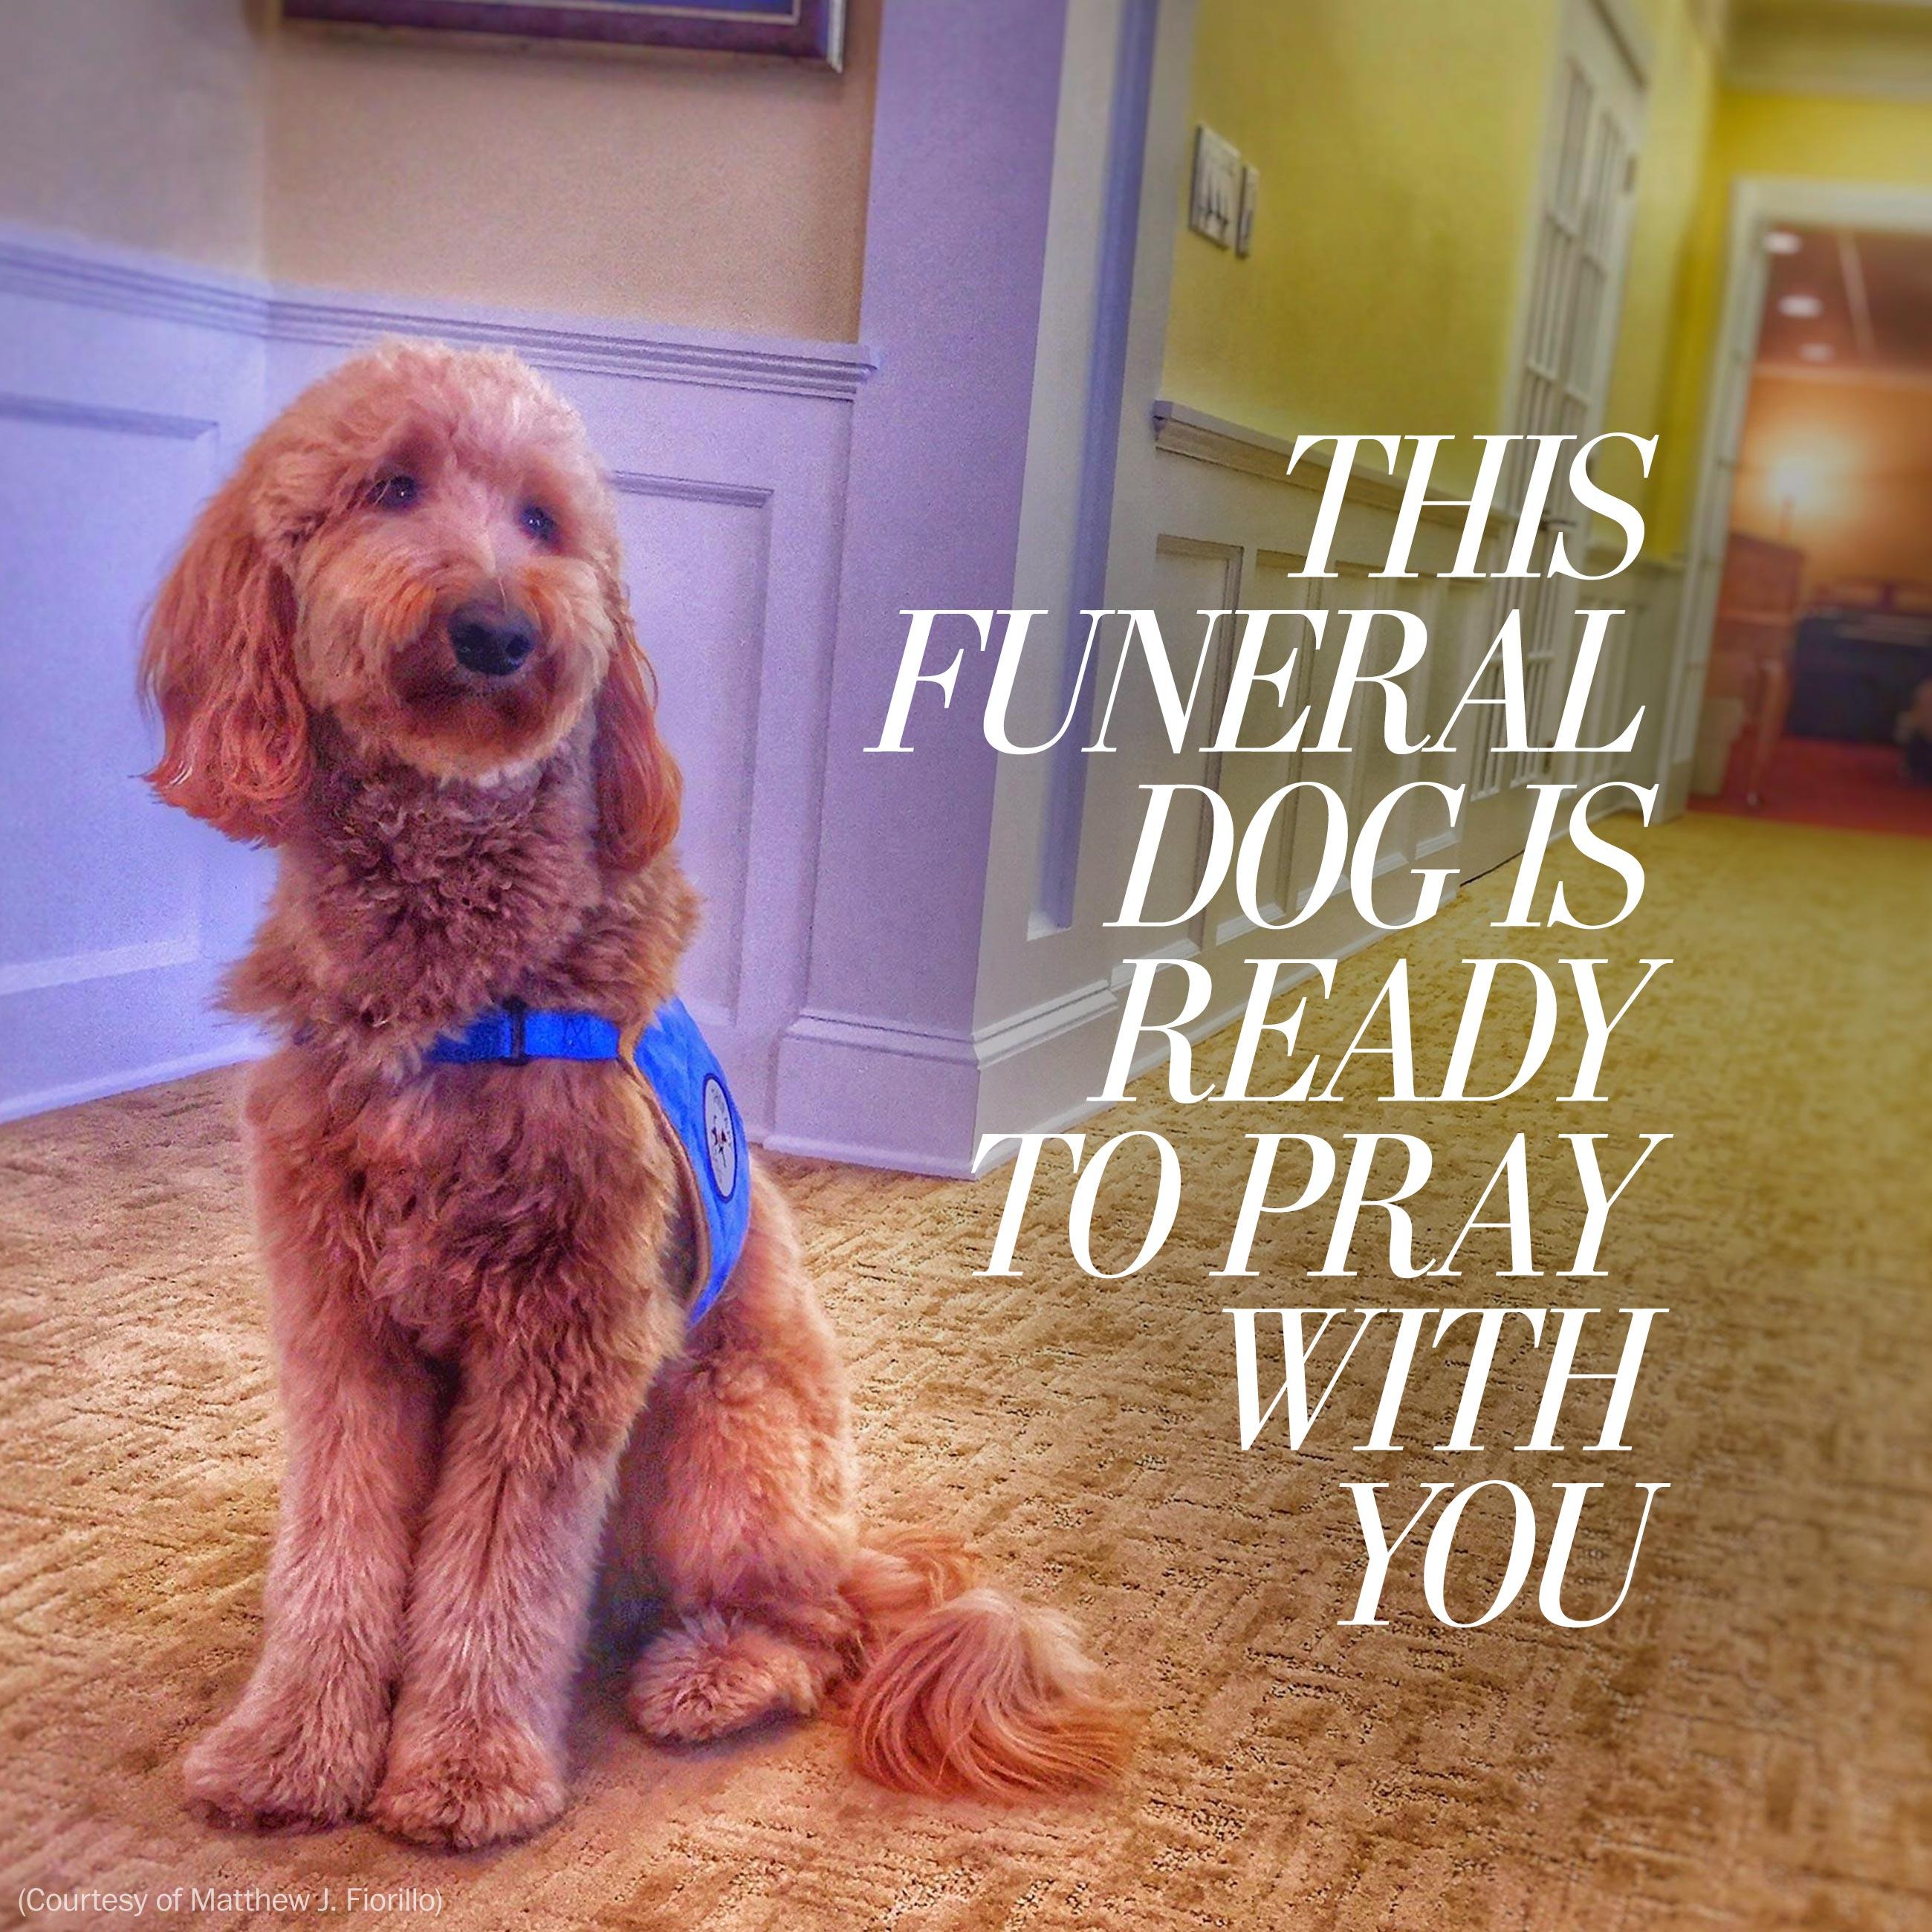 There's a dog at this funeral home, ready to pray with you